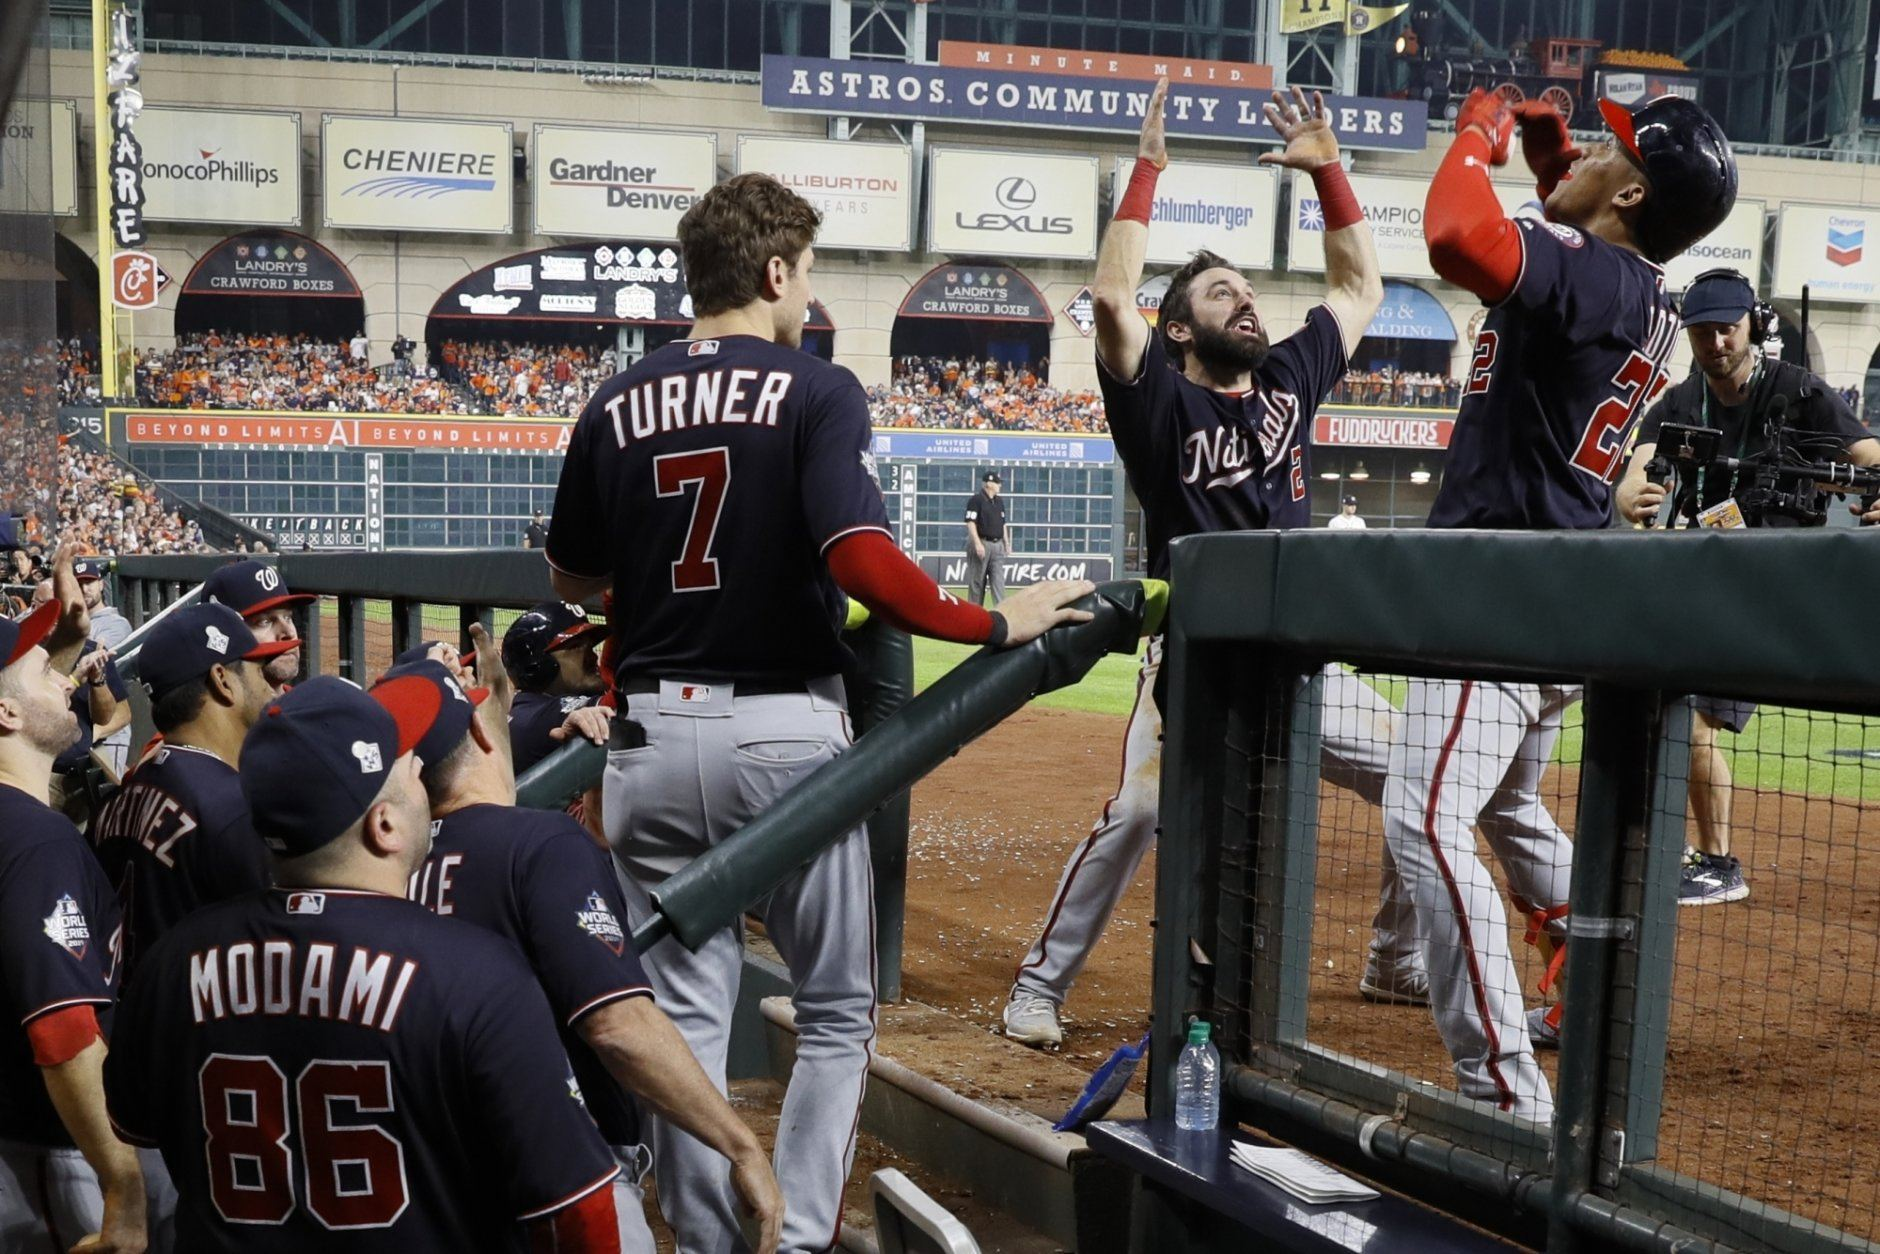 Washington Nationals' Juan Soto is congratulated by Adam Eaton after hitting a home run during the fifth inning of Game 6 of the baseball World Series against the Houston Astros Tuesday, Oct. 29, 2019, in Houston. (AP Photo/Matt Slocum)